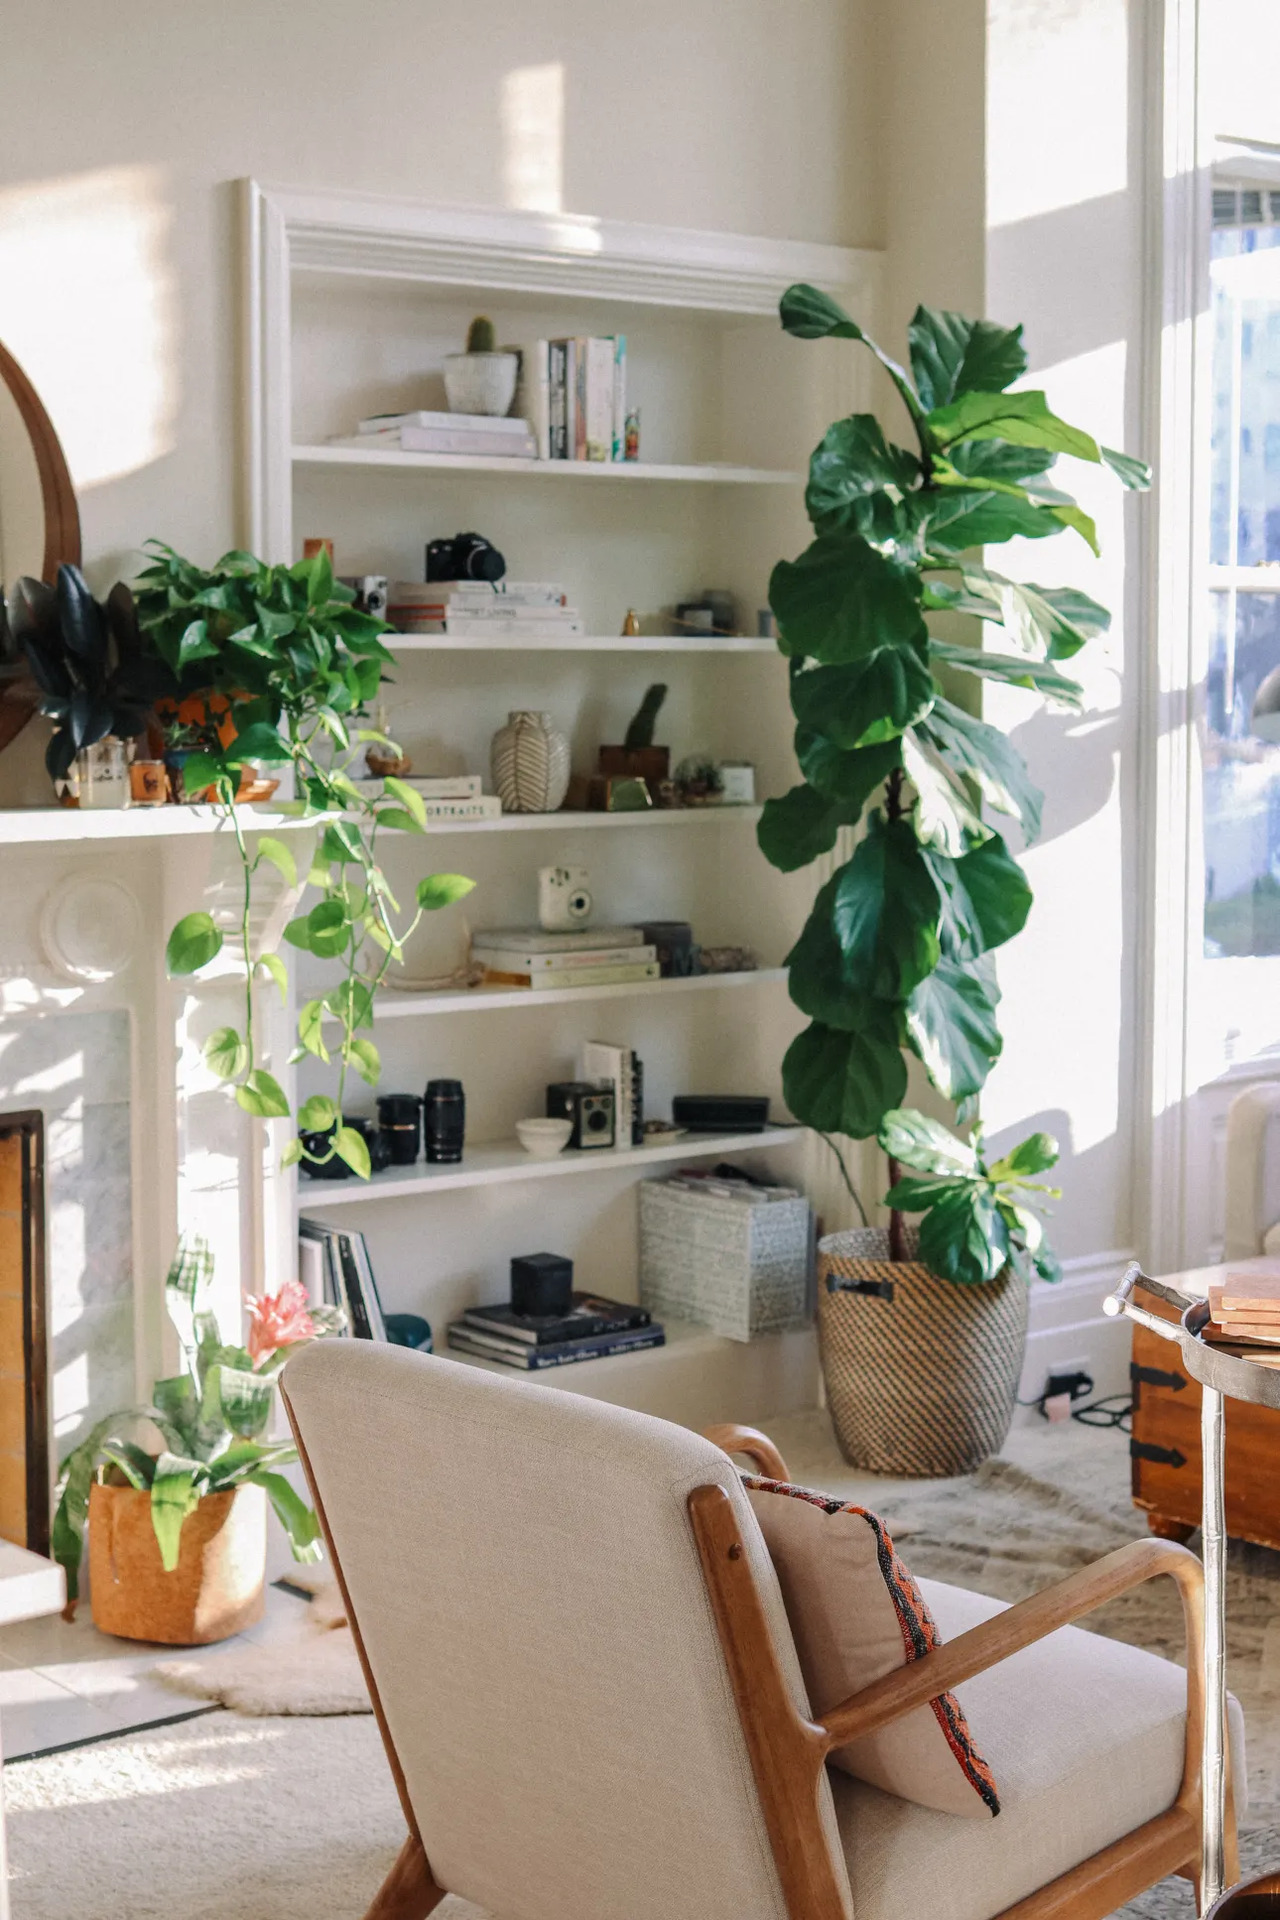 A dreamy San Francisco studio apartment filled with plants ...